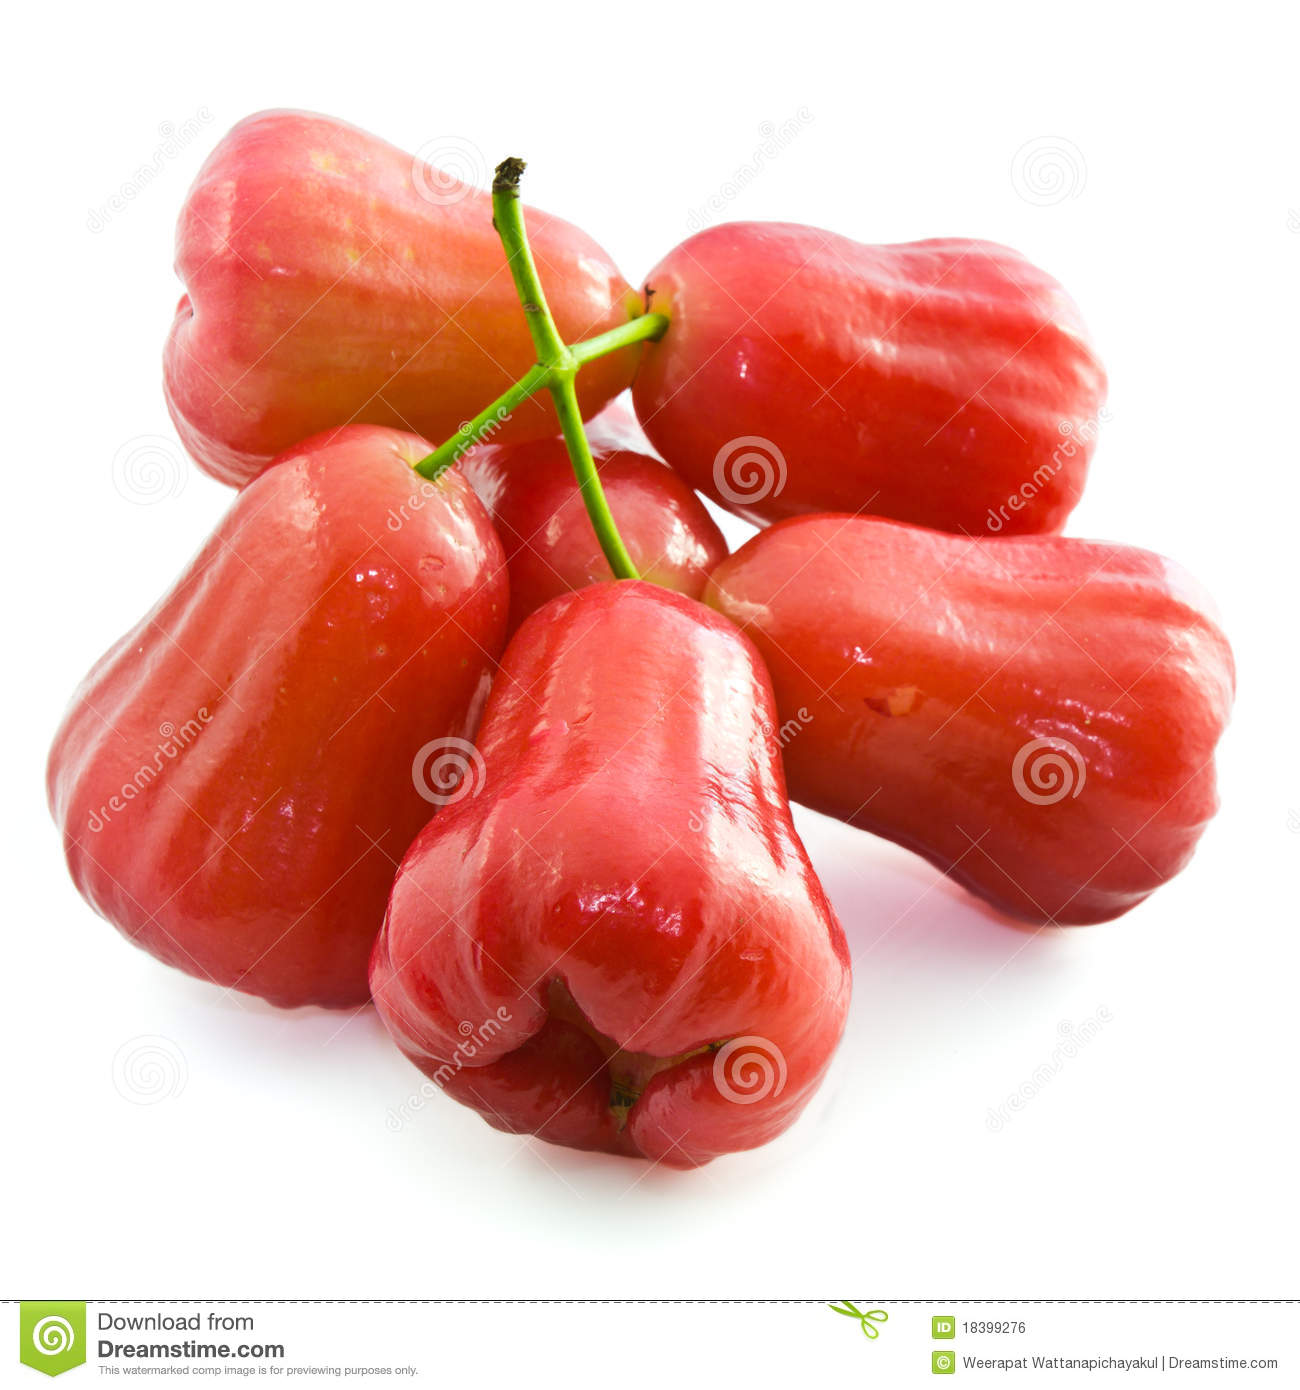 Rose Apple Royalty Free Stock Image - Image: 18399276